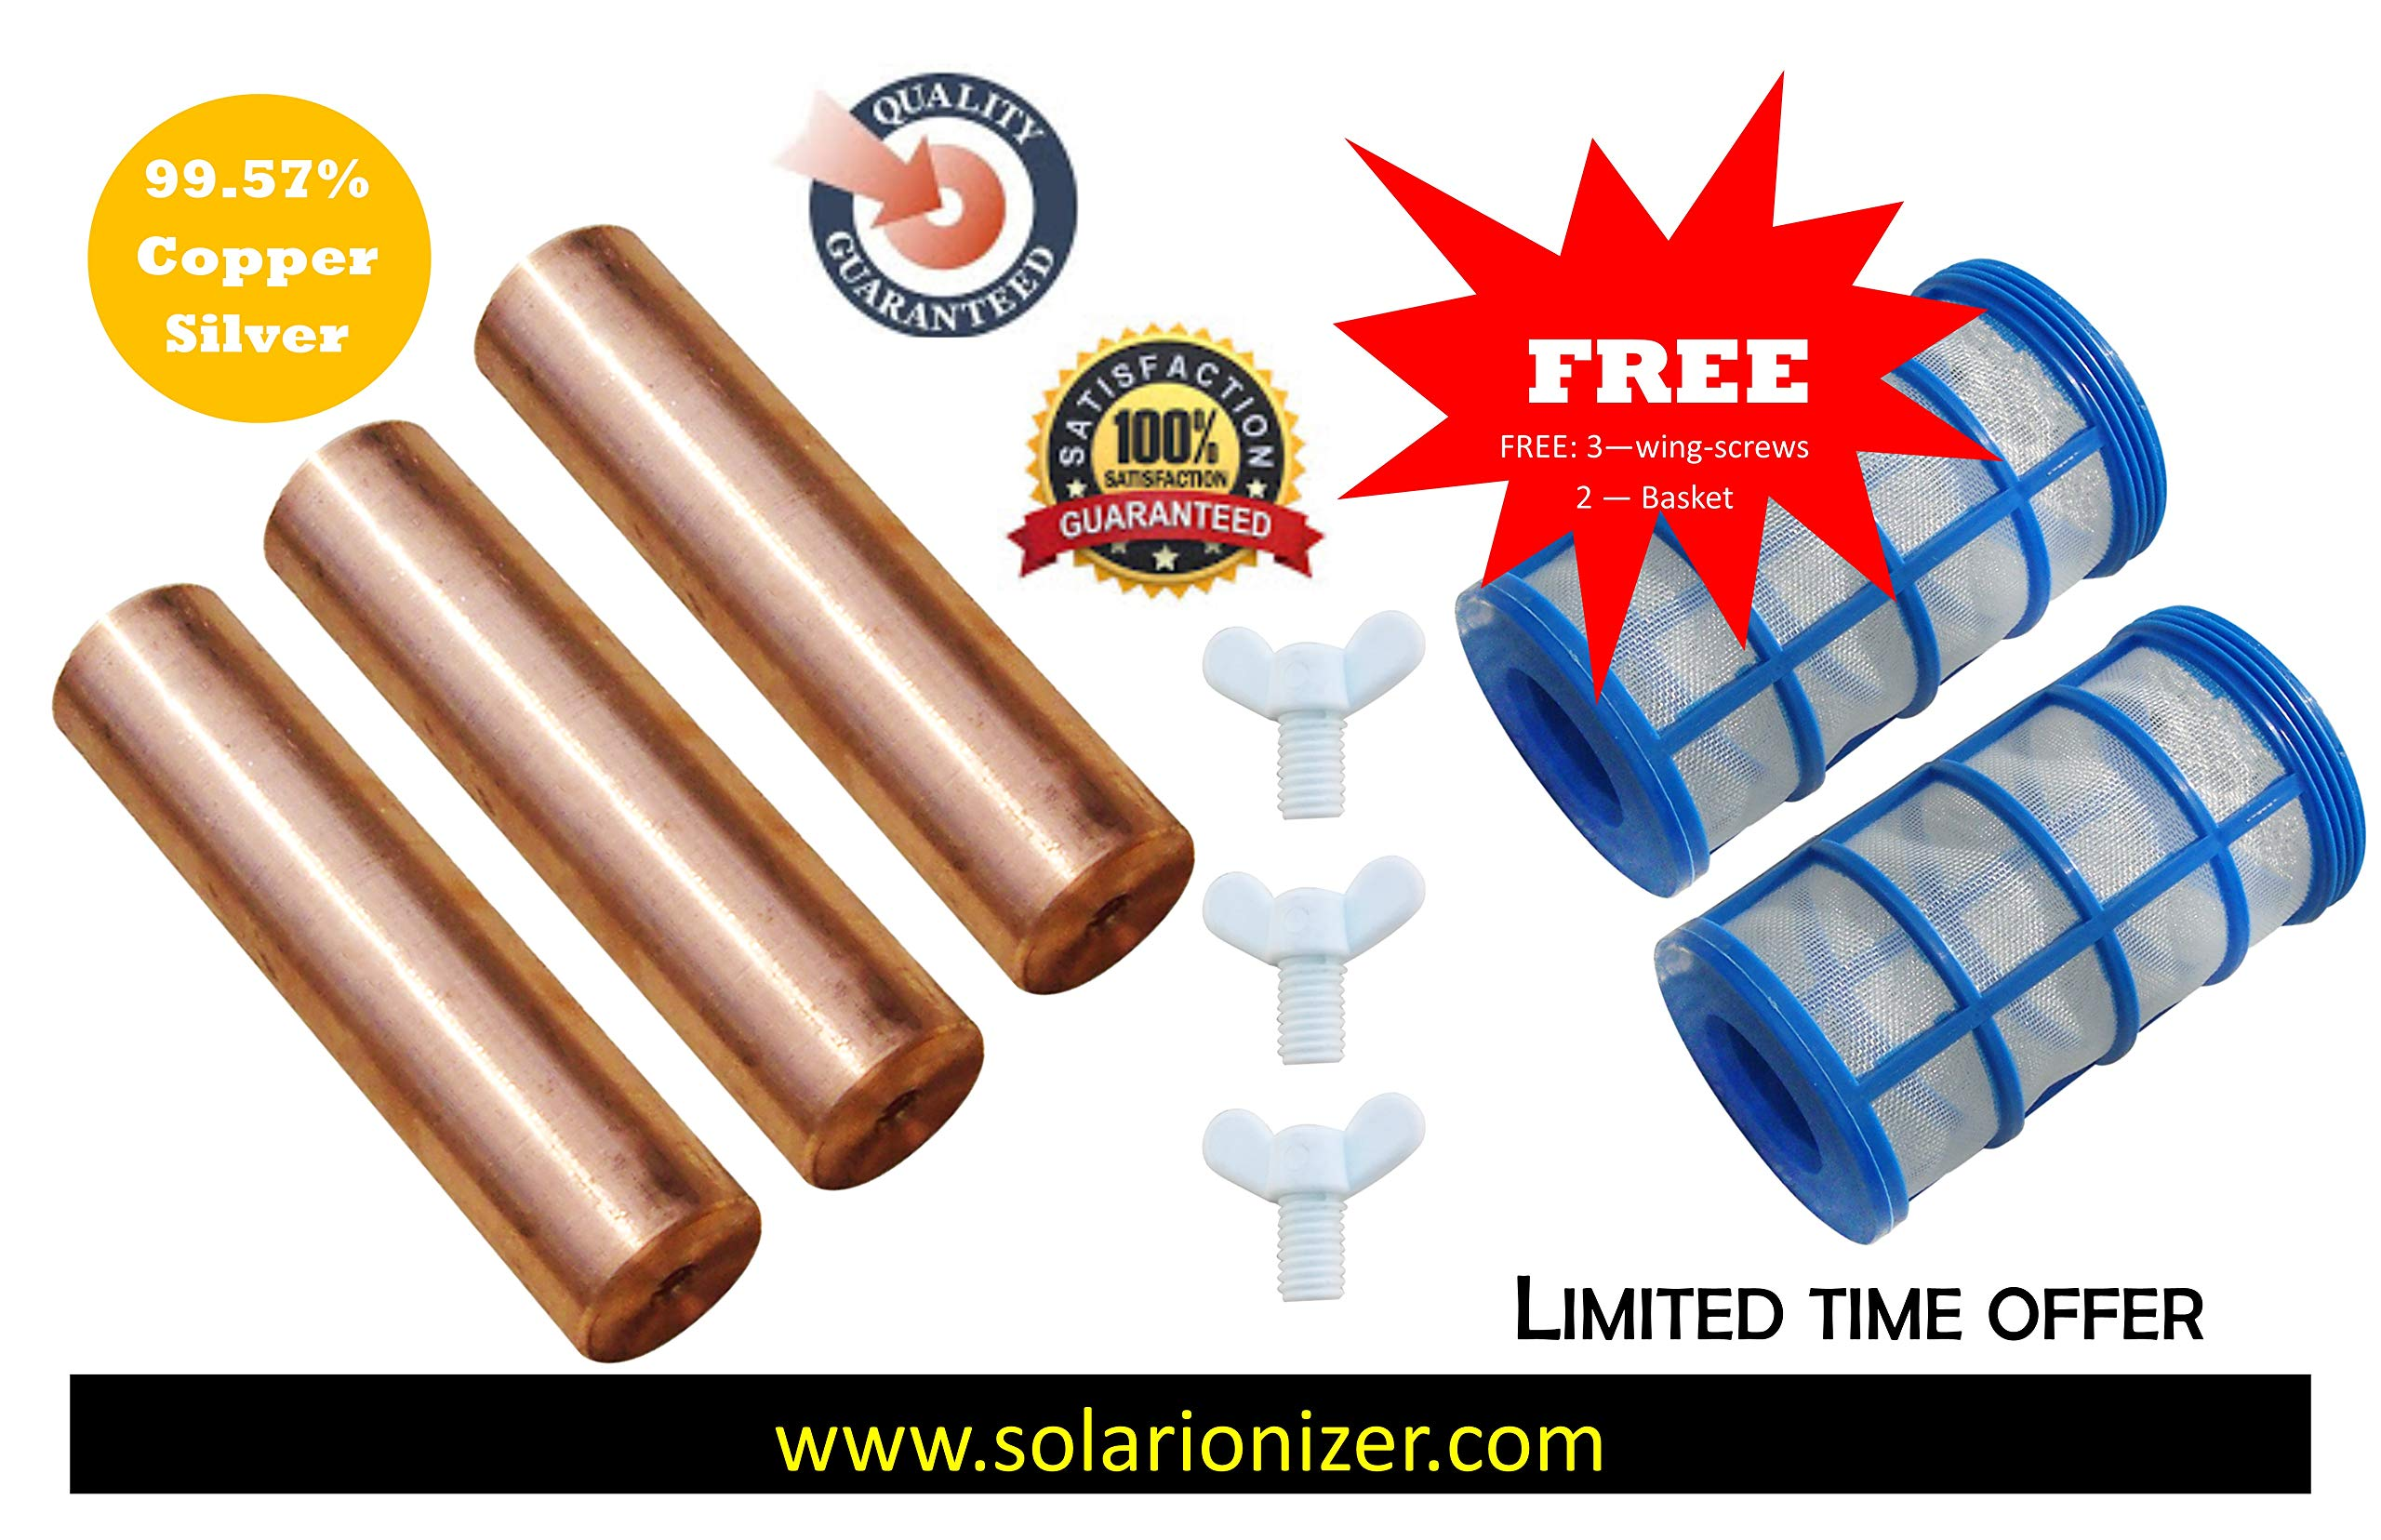 Replacement Remington Solar | Human Creations | Mananasun Compatible Anode (99.57% Copper-Silver) | 3-Pack - www.solarionizer.com by Solar Ionizer